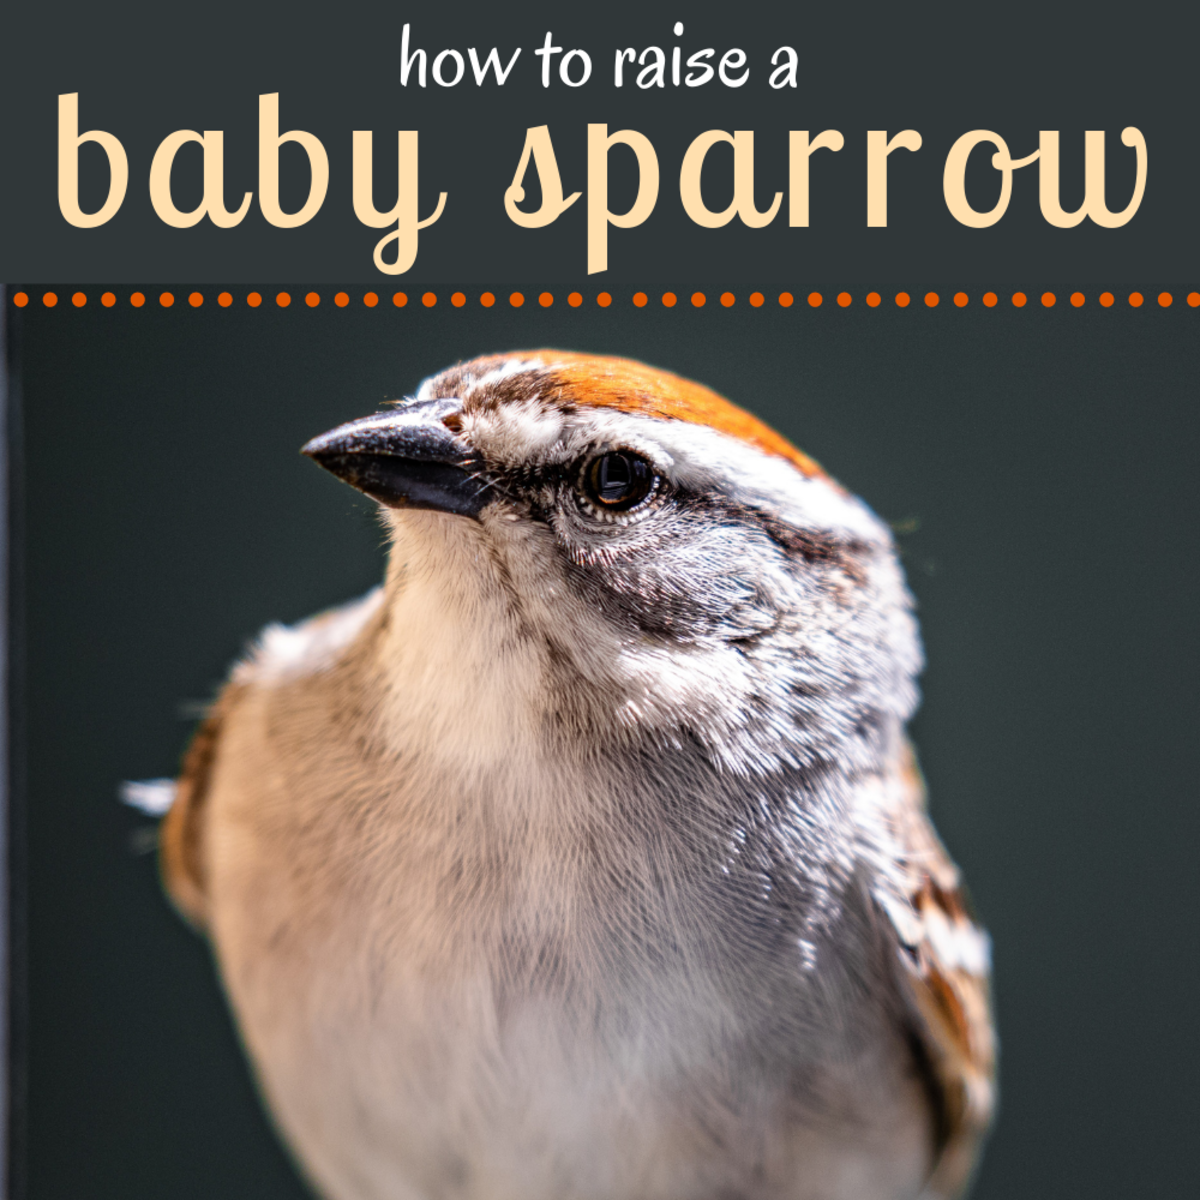 What to do if you find a baby sparrow.